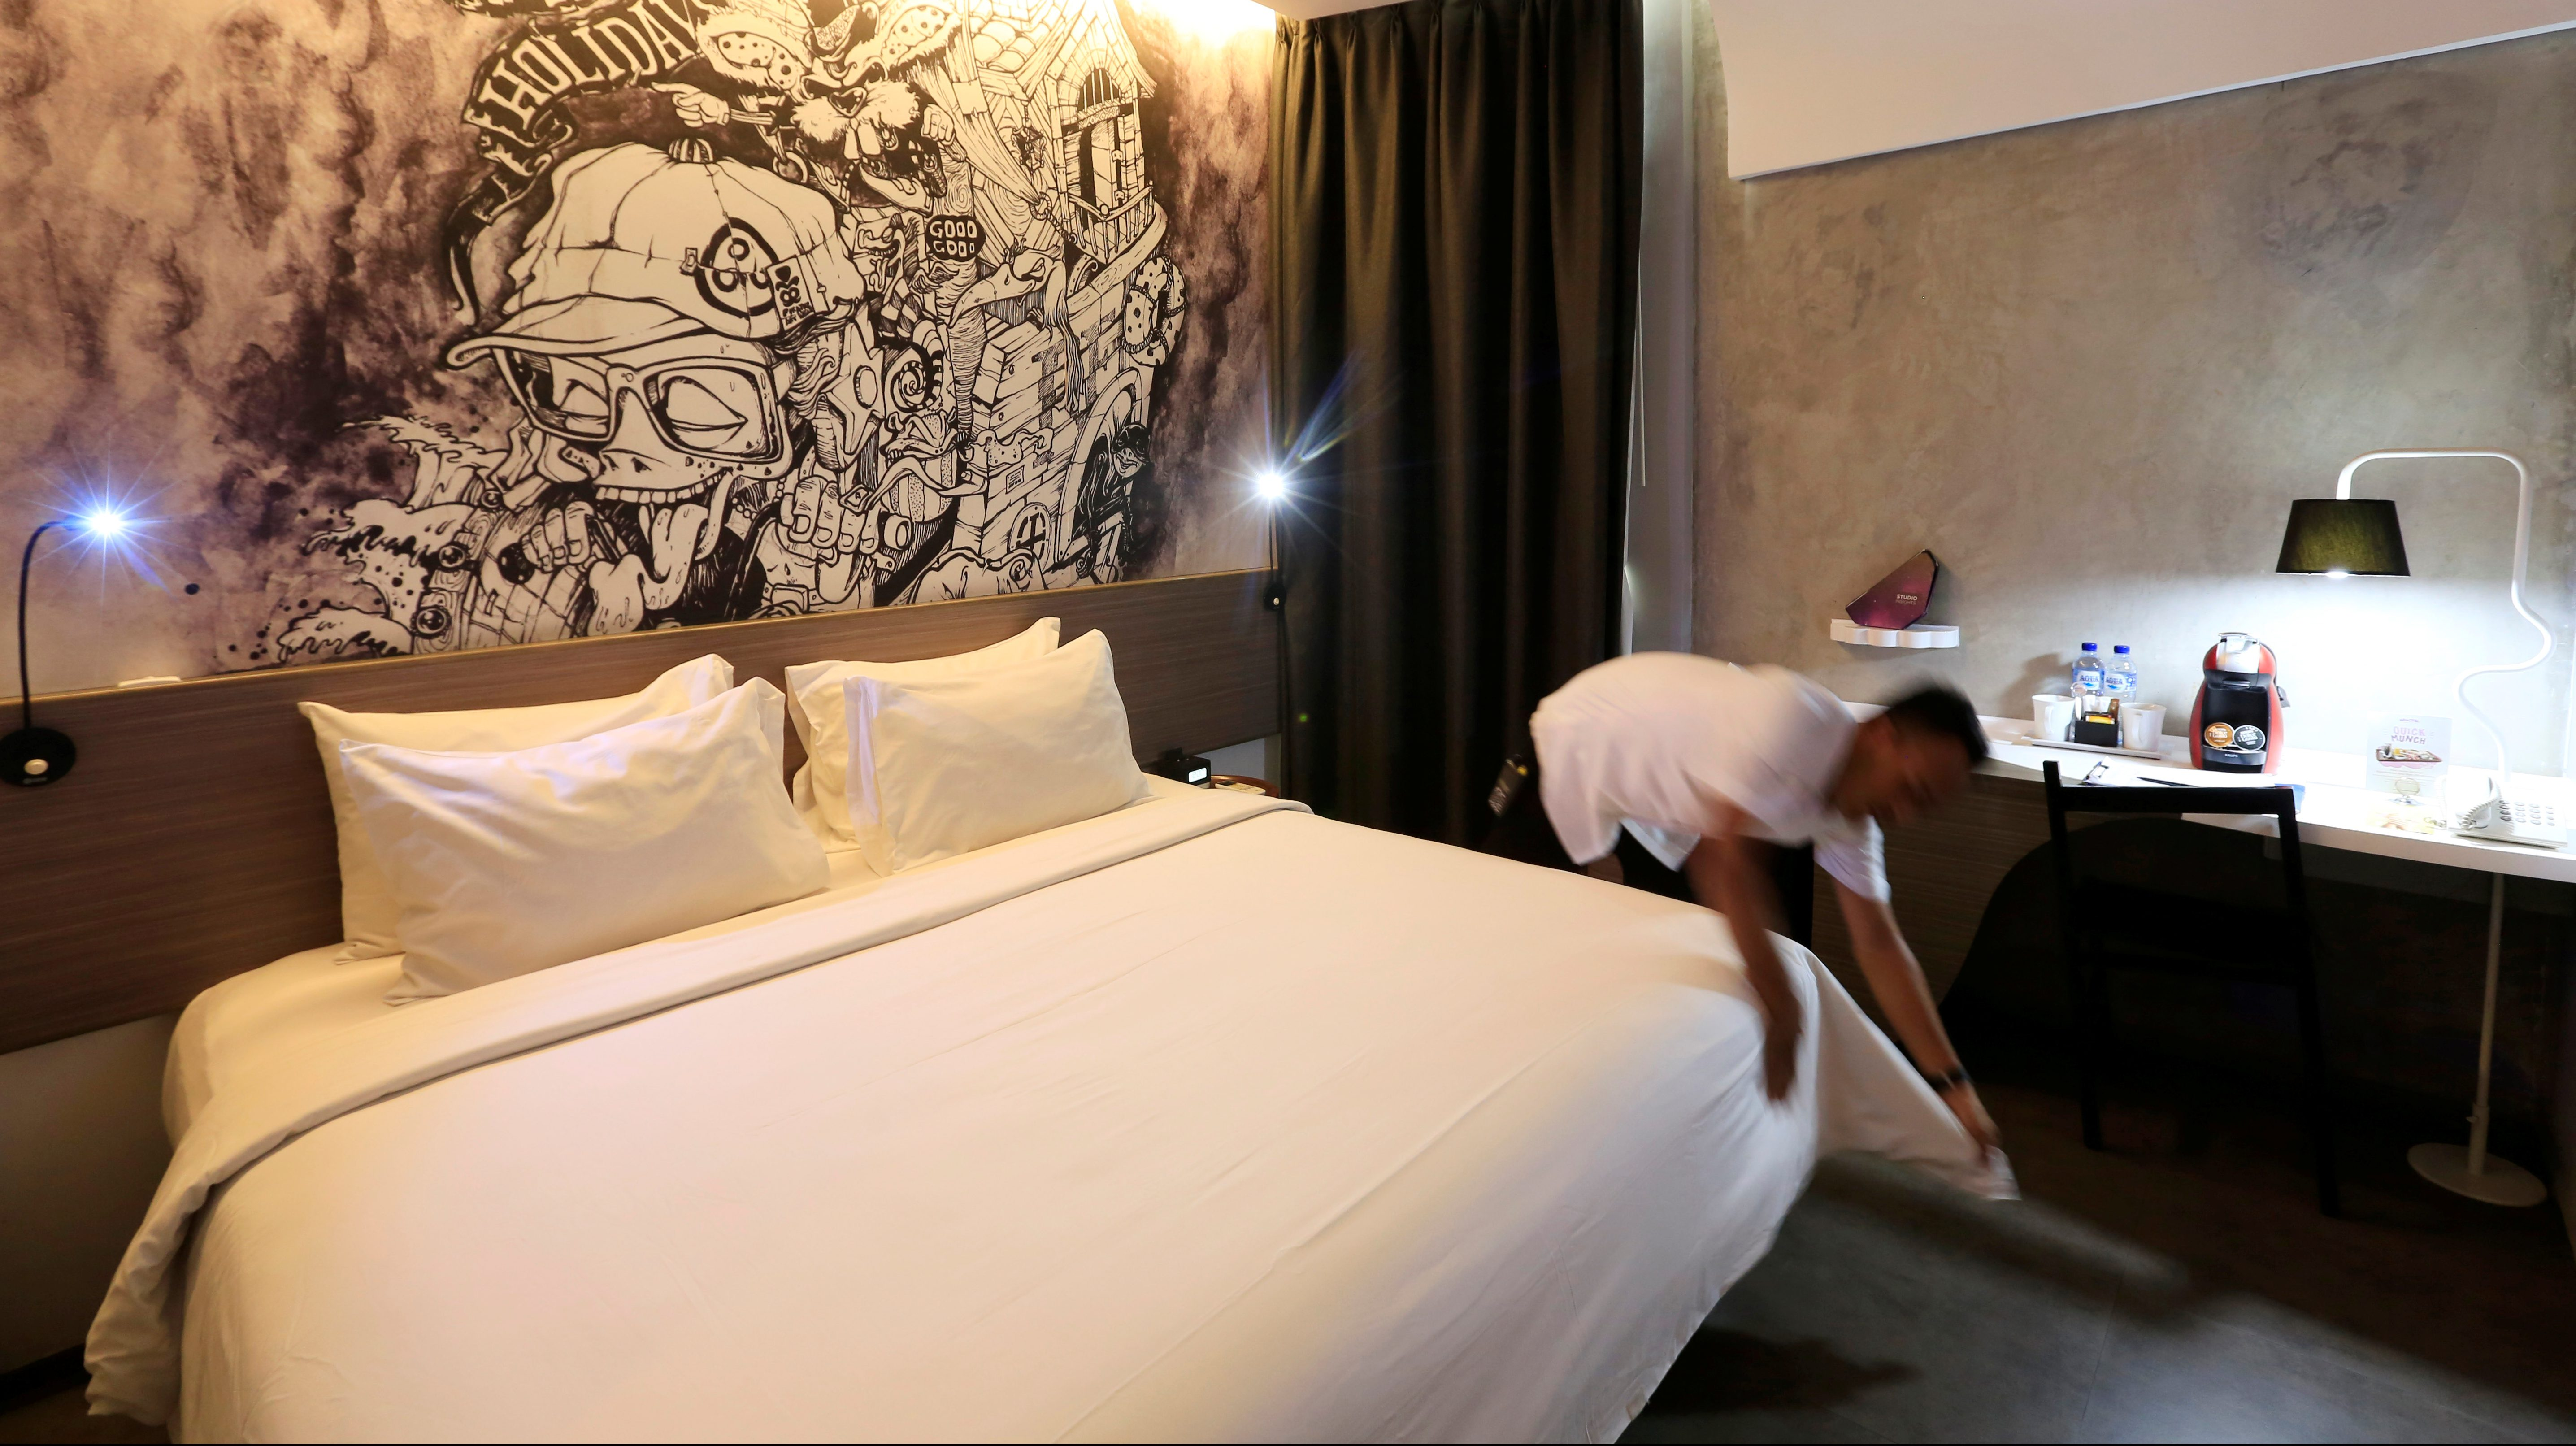 A worker prepares a bed, at a room of the Artotel, next to a painting by Indonesian artist Oky Rey Montha, in Jakarta